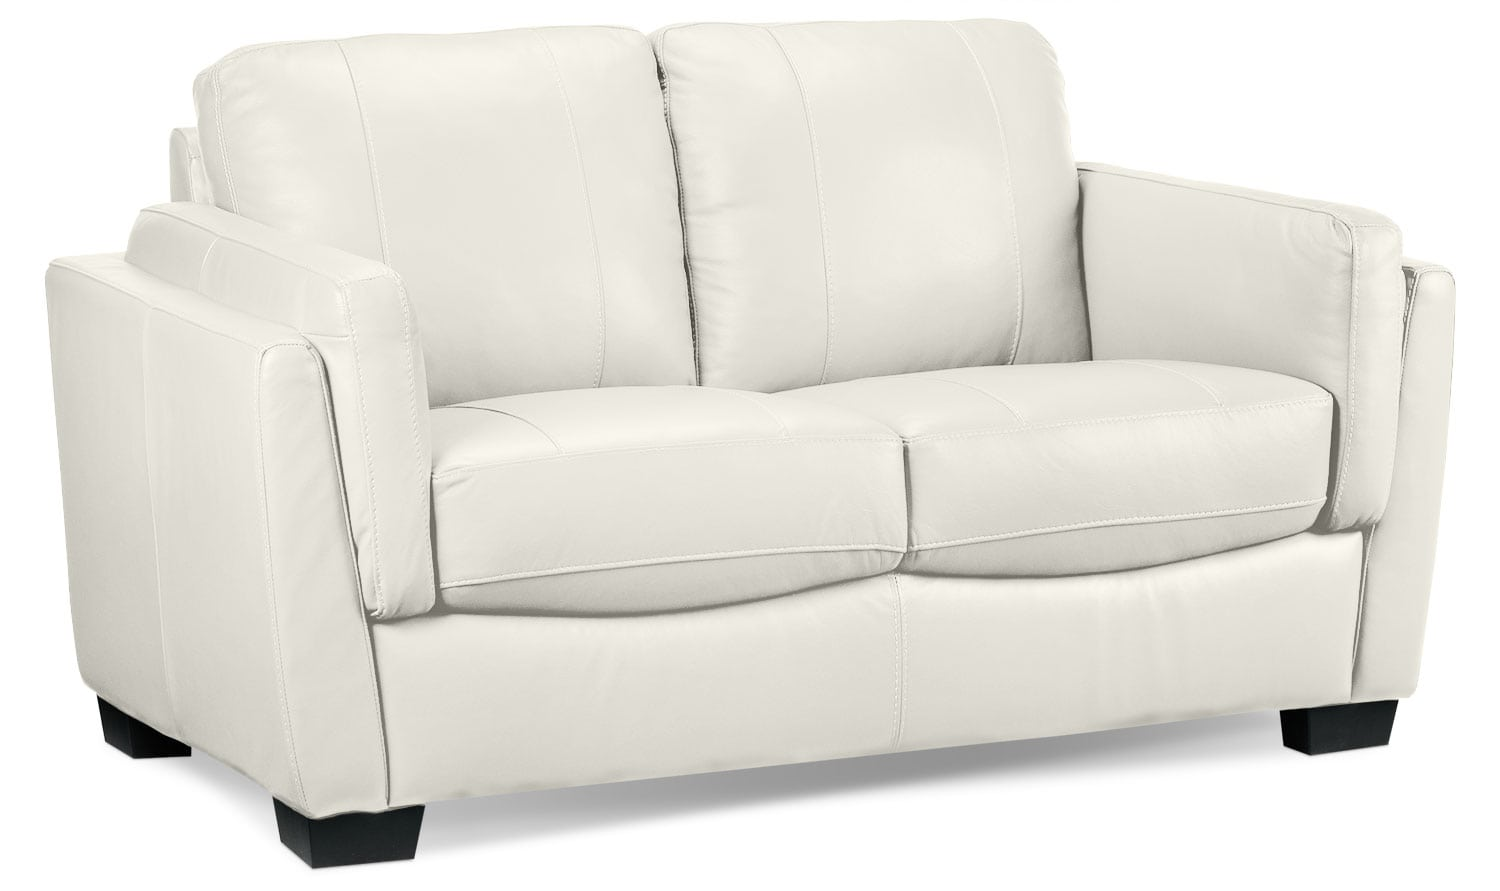 Living Room Furniture - Isadore Loveseat - White